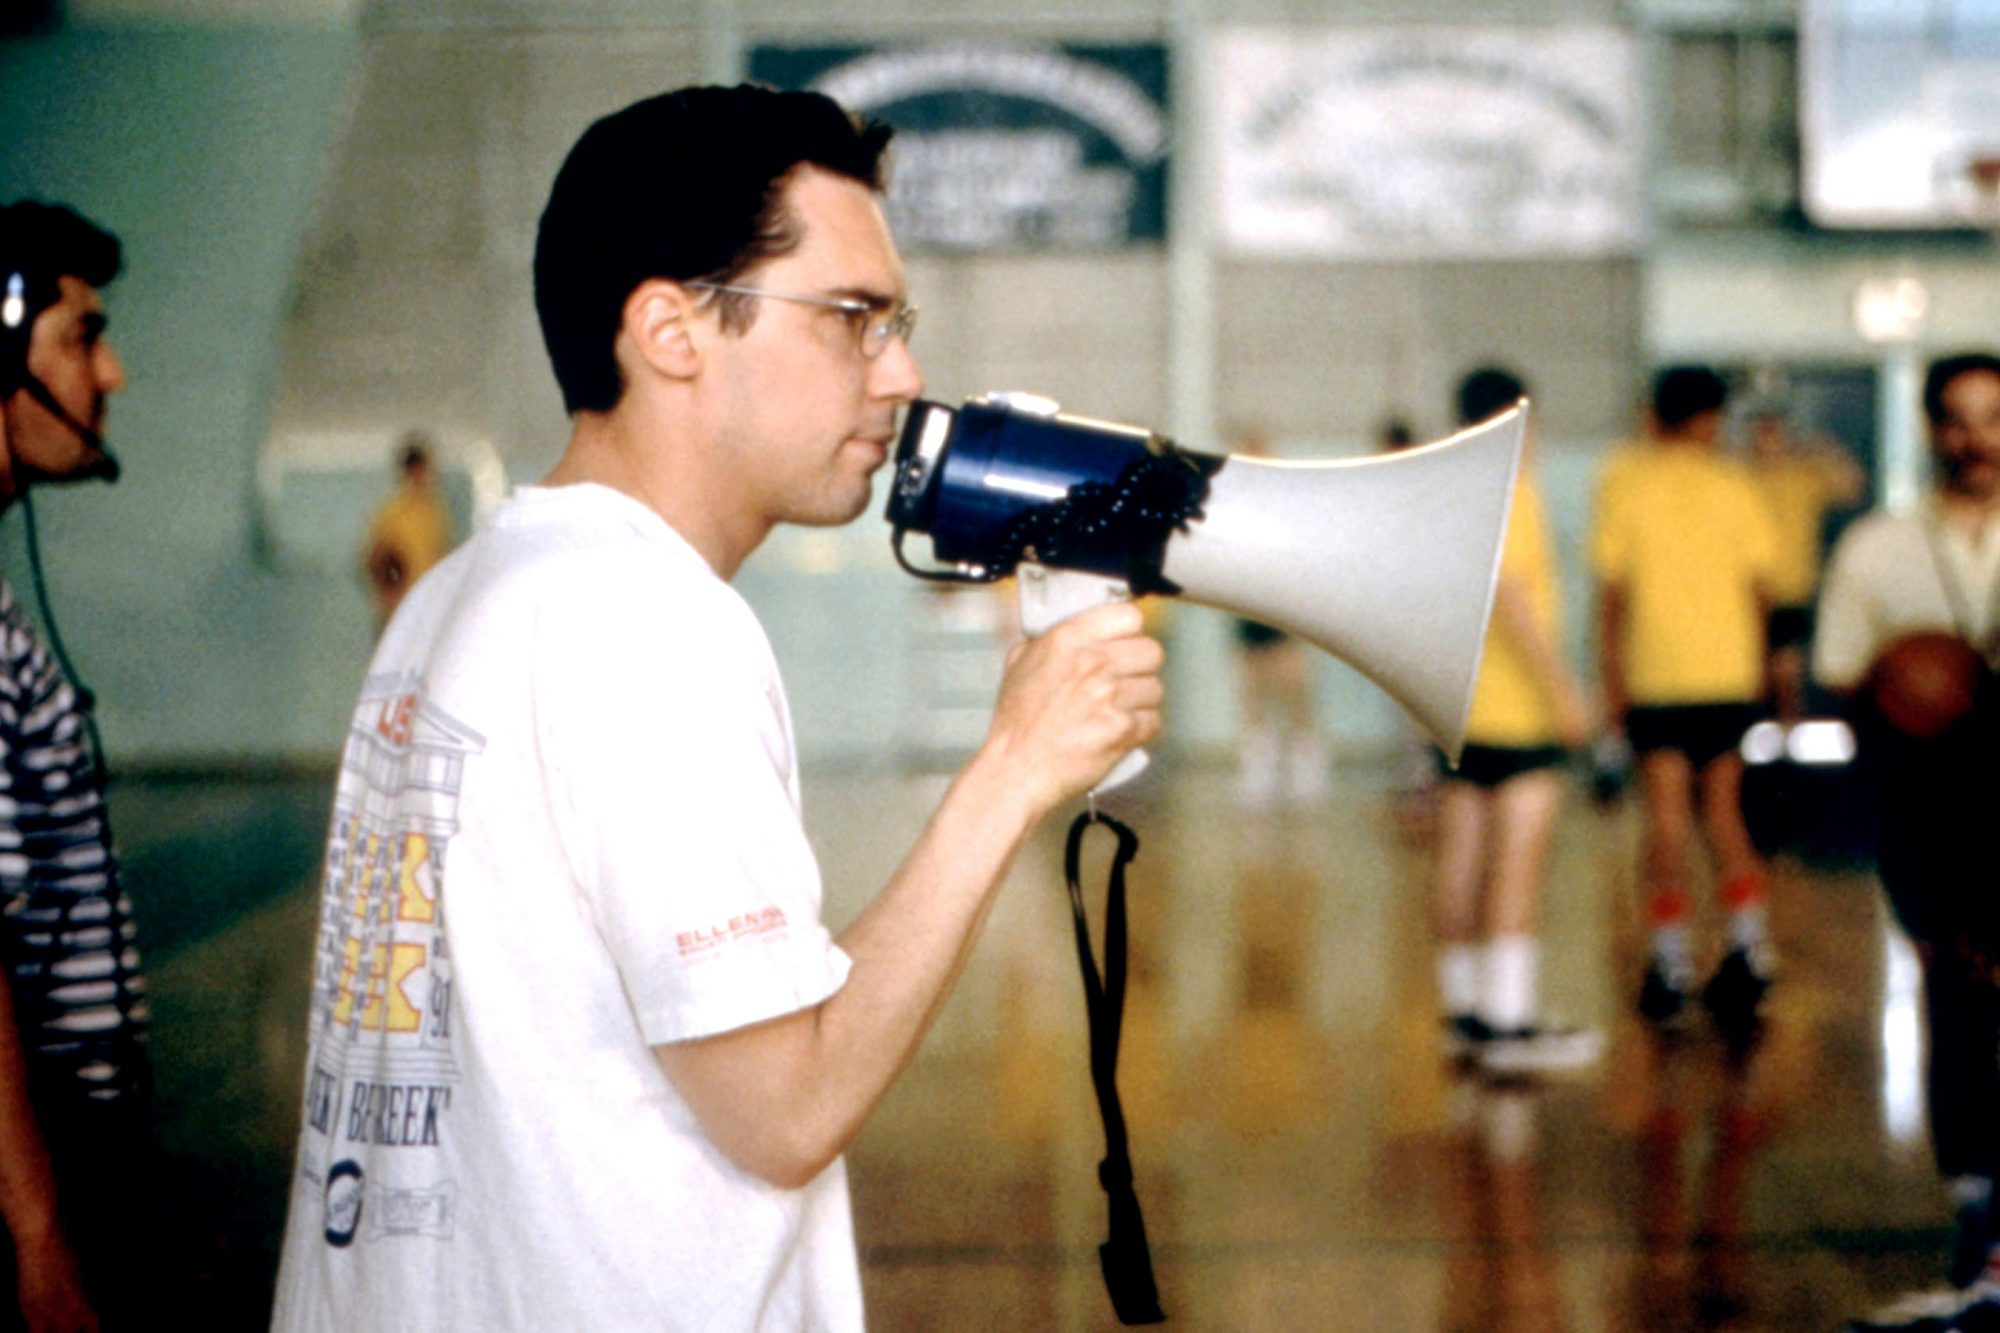 APT PUPIL, director Bryan Singer, on set, 1998. (c)Sony Pictures/courtesy Everett Collection